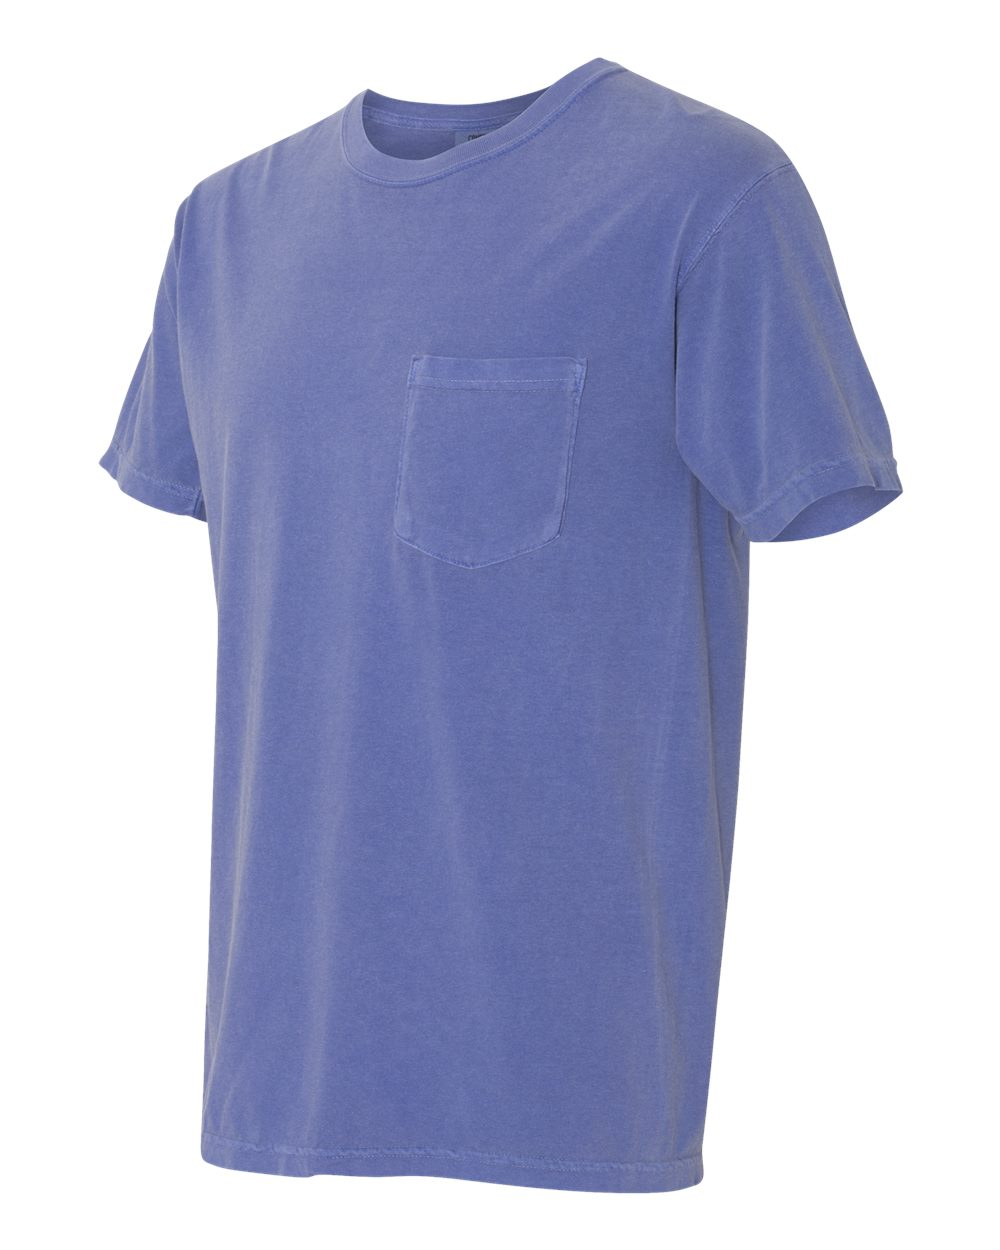 Comfort-Colors-Men-039-s-6-1-oz-Garment-Dyed-Pocket-T-Shirt-6030CC-S-3XL thumbnail 69